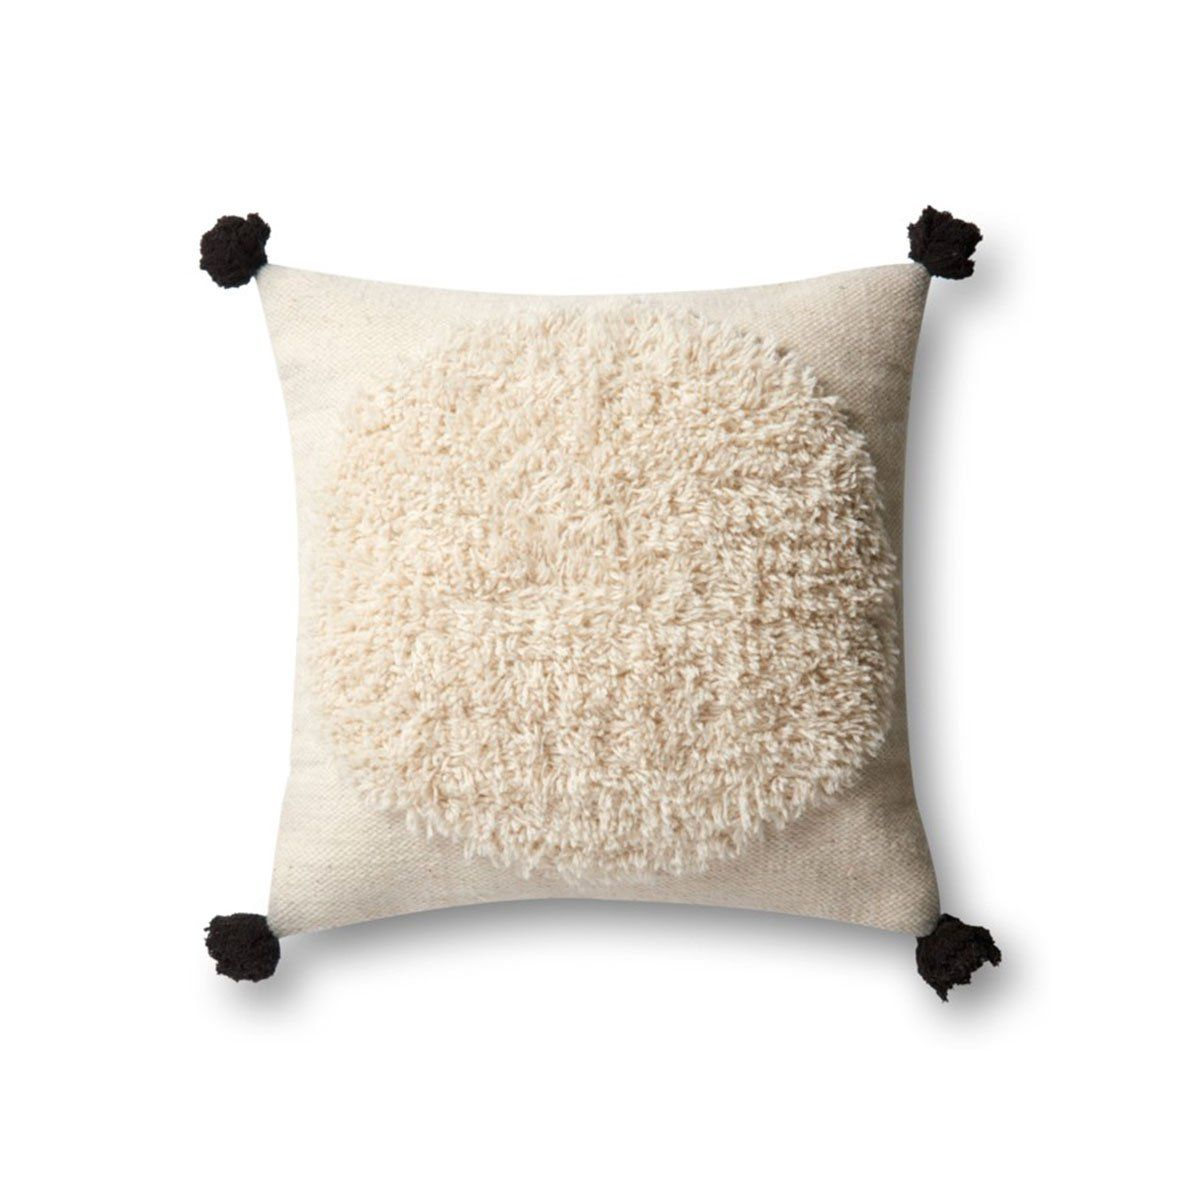 High Quality Sofa Pillows Luxury Throw Pillows High Quality Throw Pillows Trnk Finds